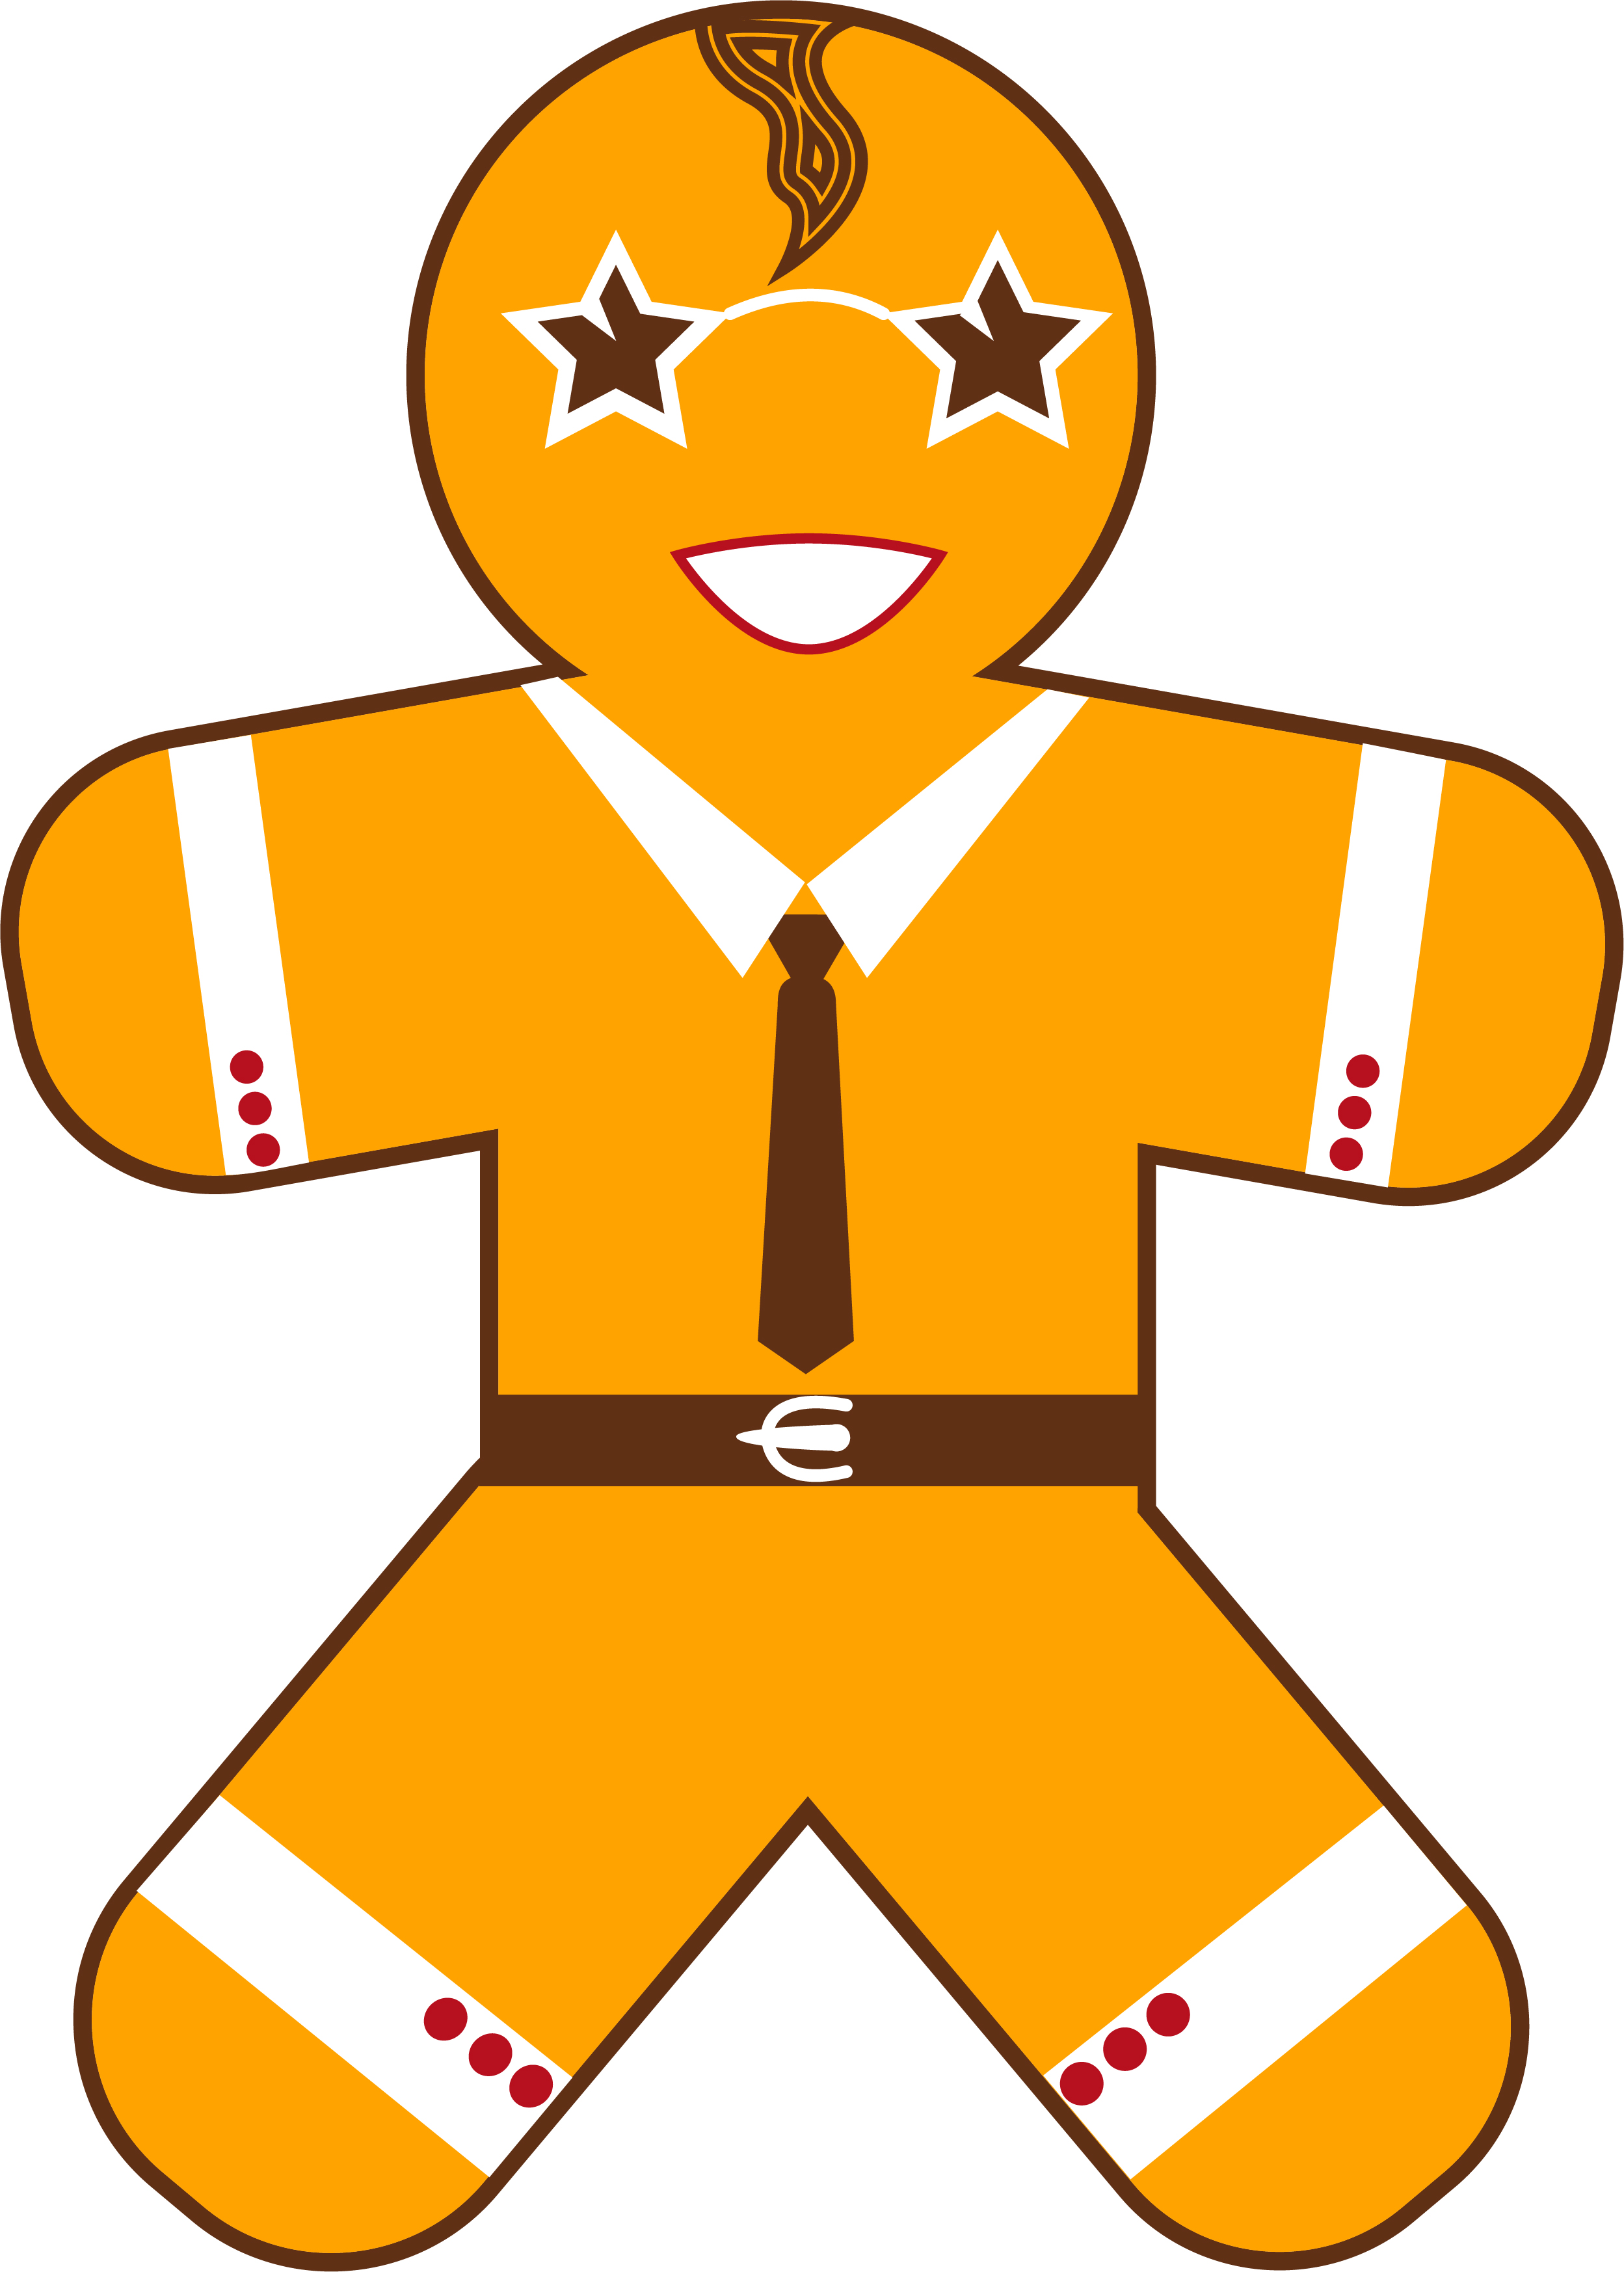 New Year Gingerbread Man example image 3